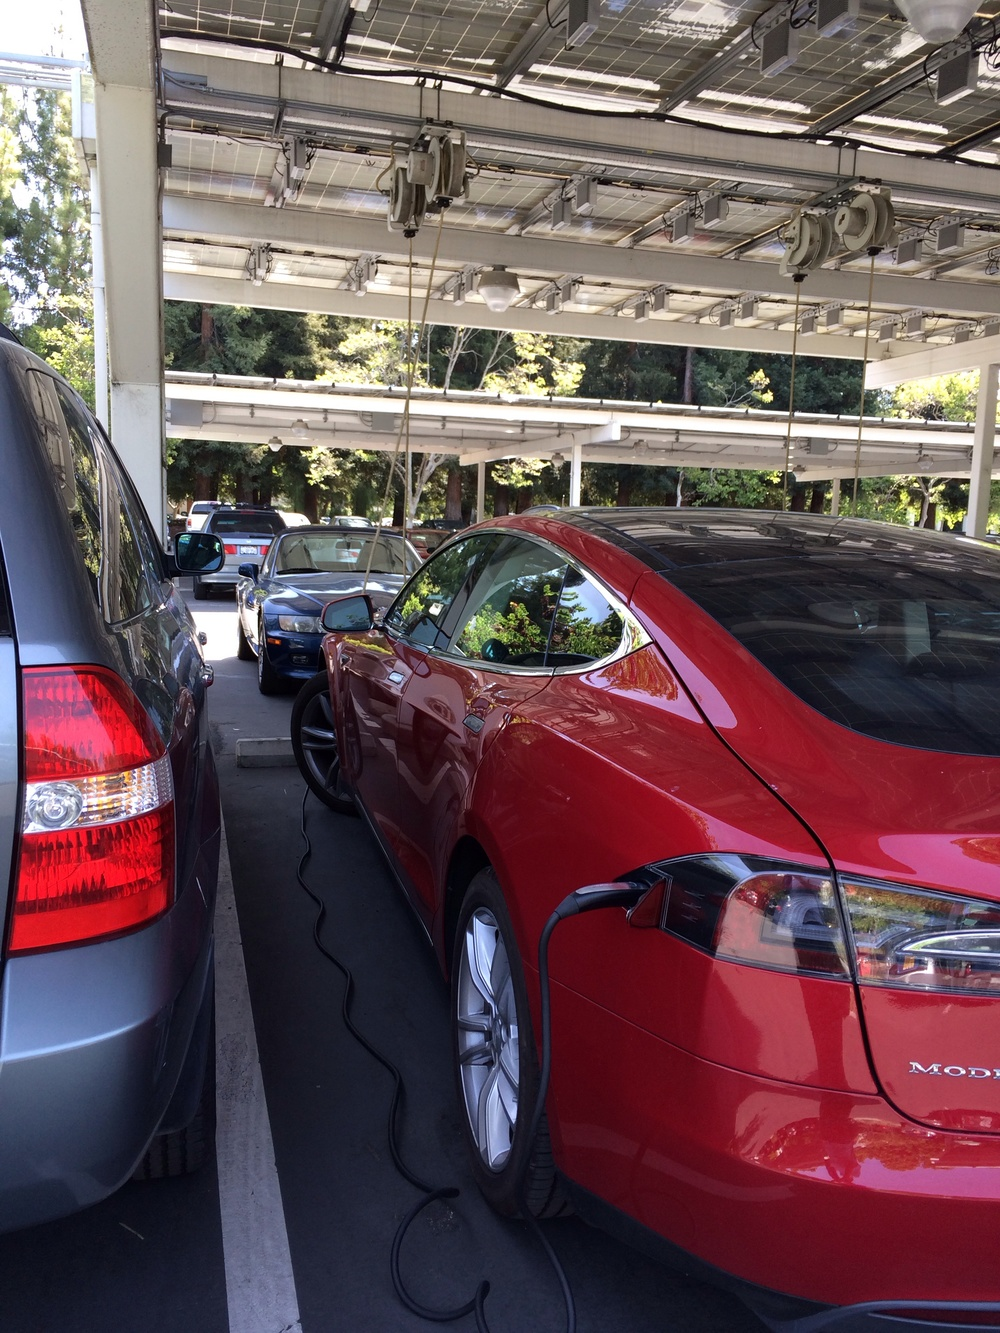 A Tesla Model S charging under the Google solar canopy. Not one but TWO Tesla Roadsters were parked on the other side.